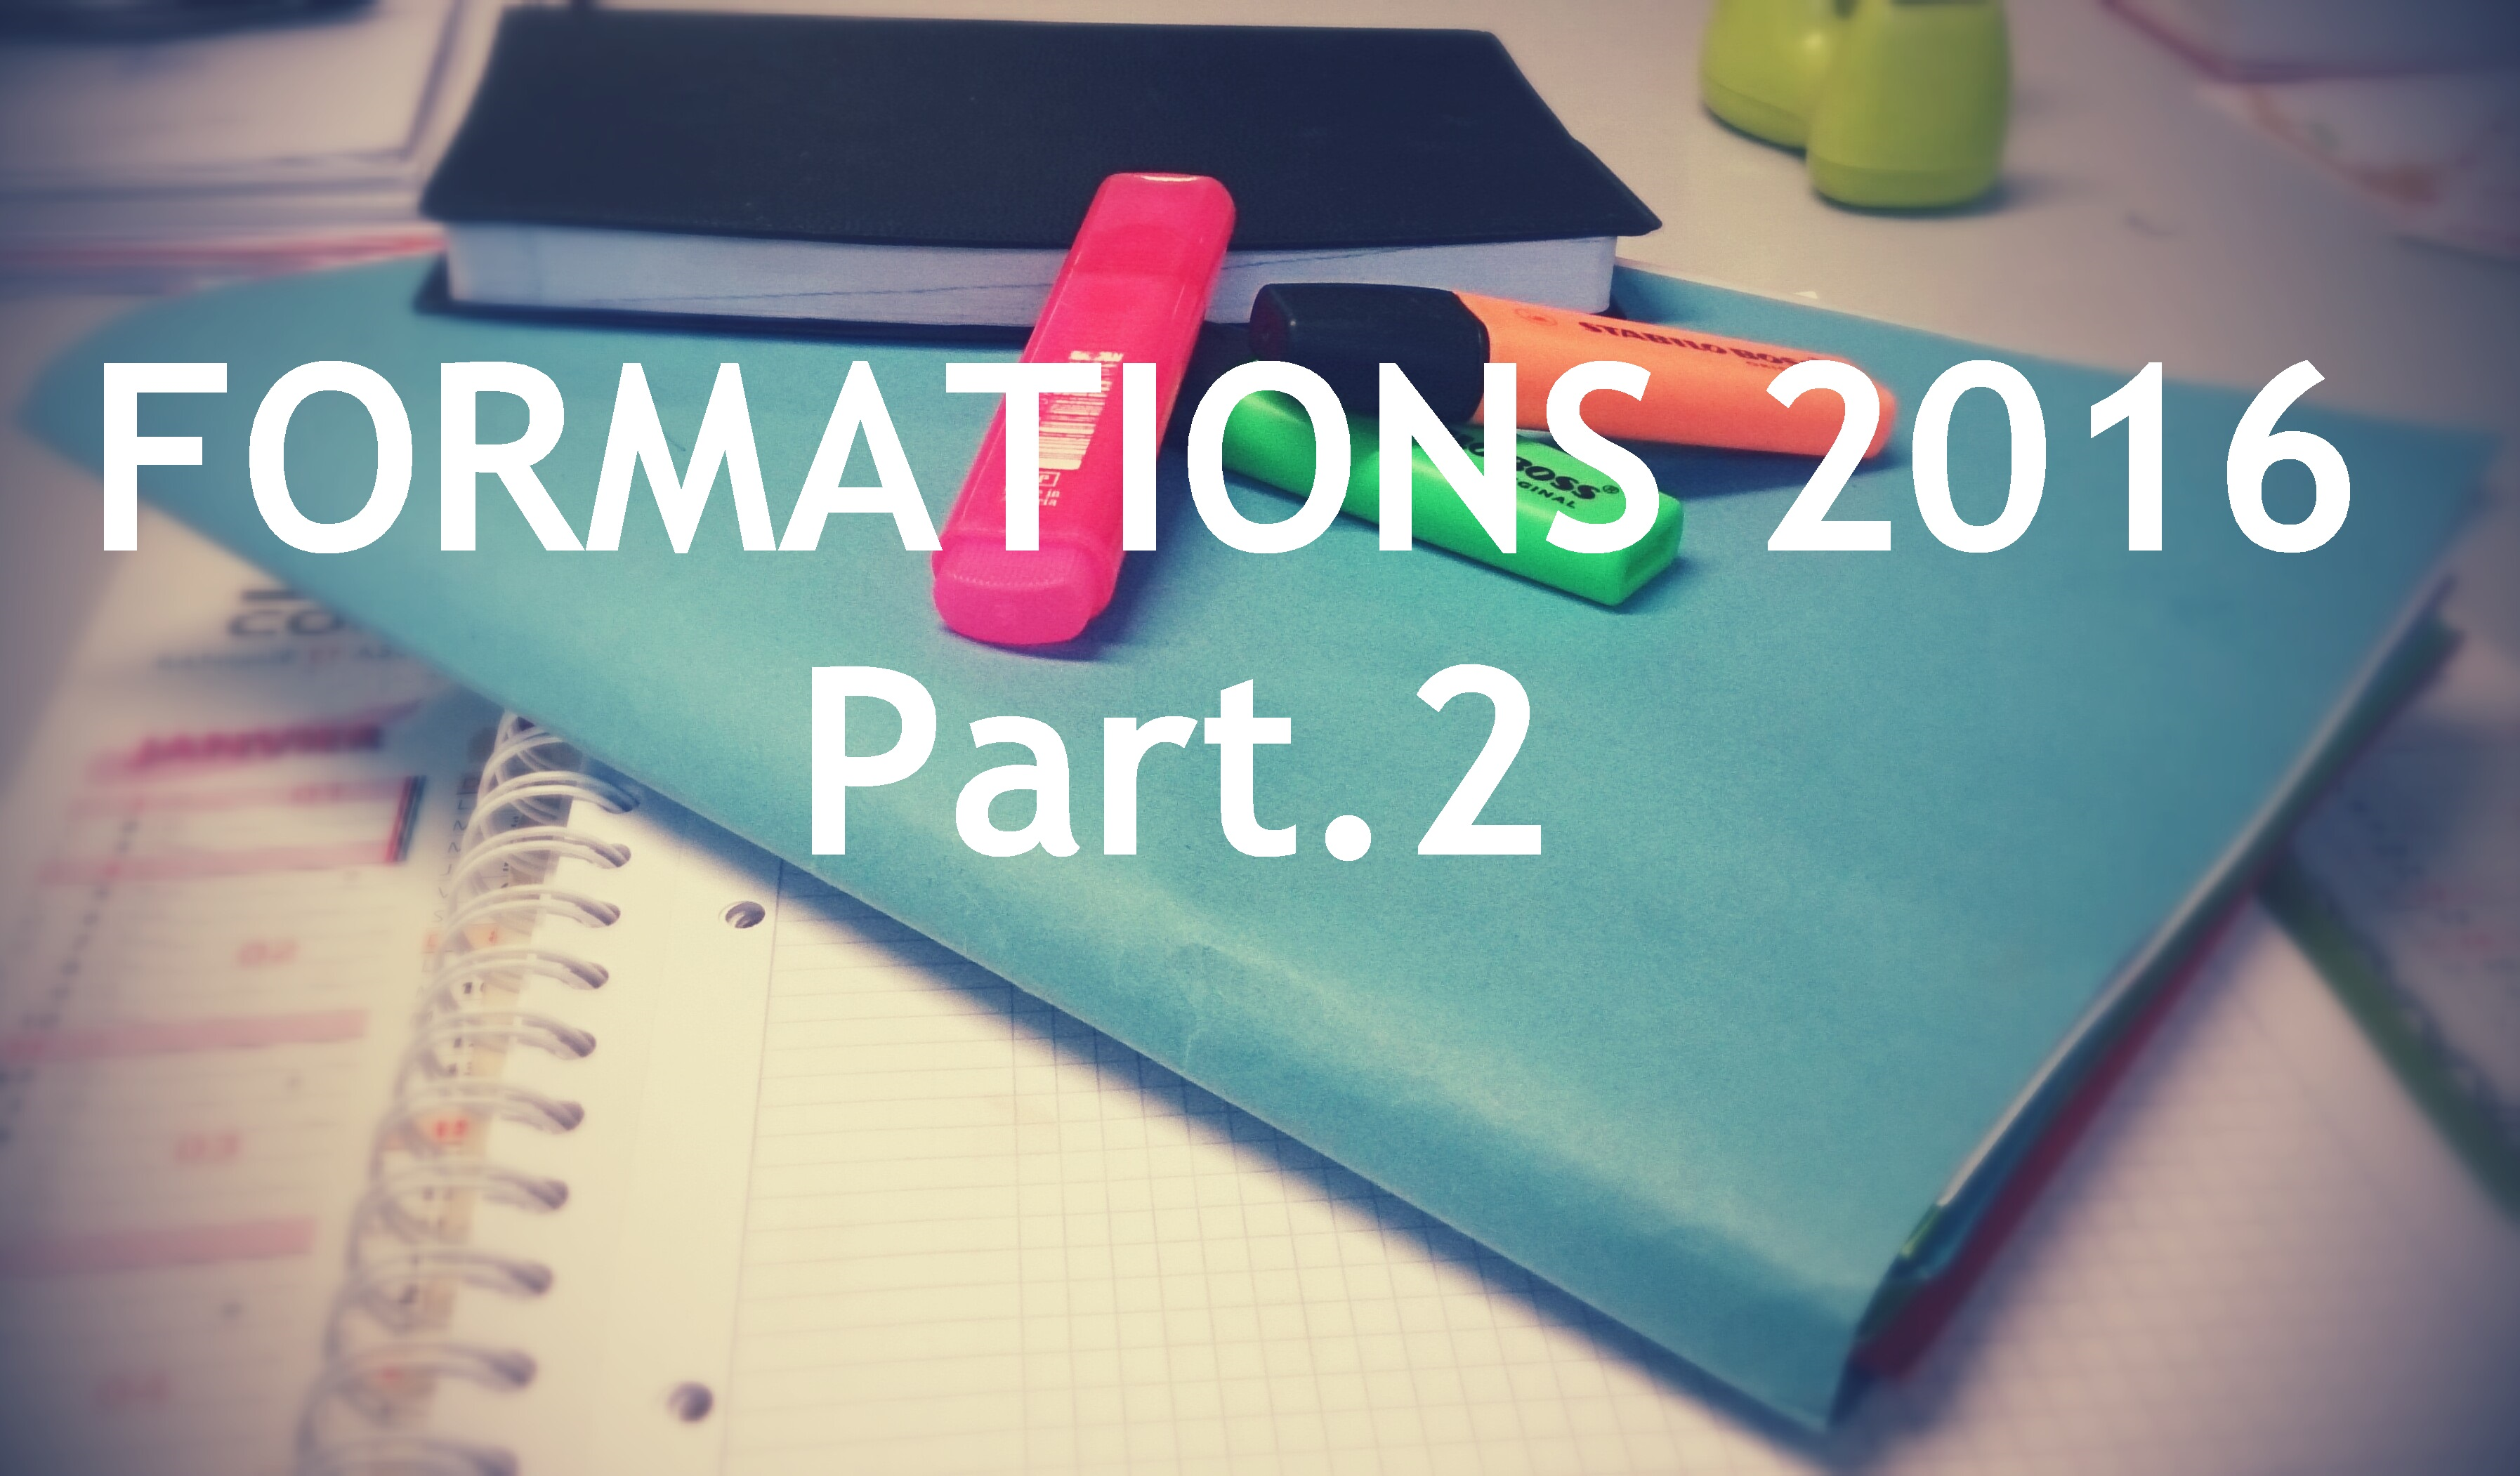 Formations 2016: Partie 2